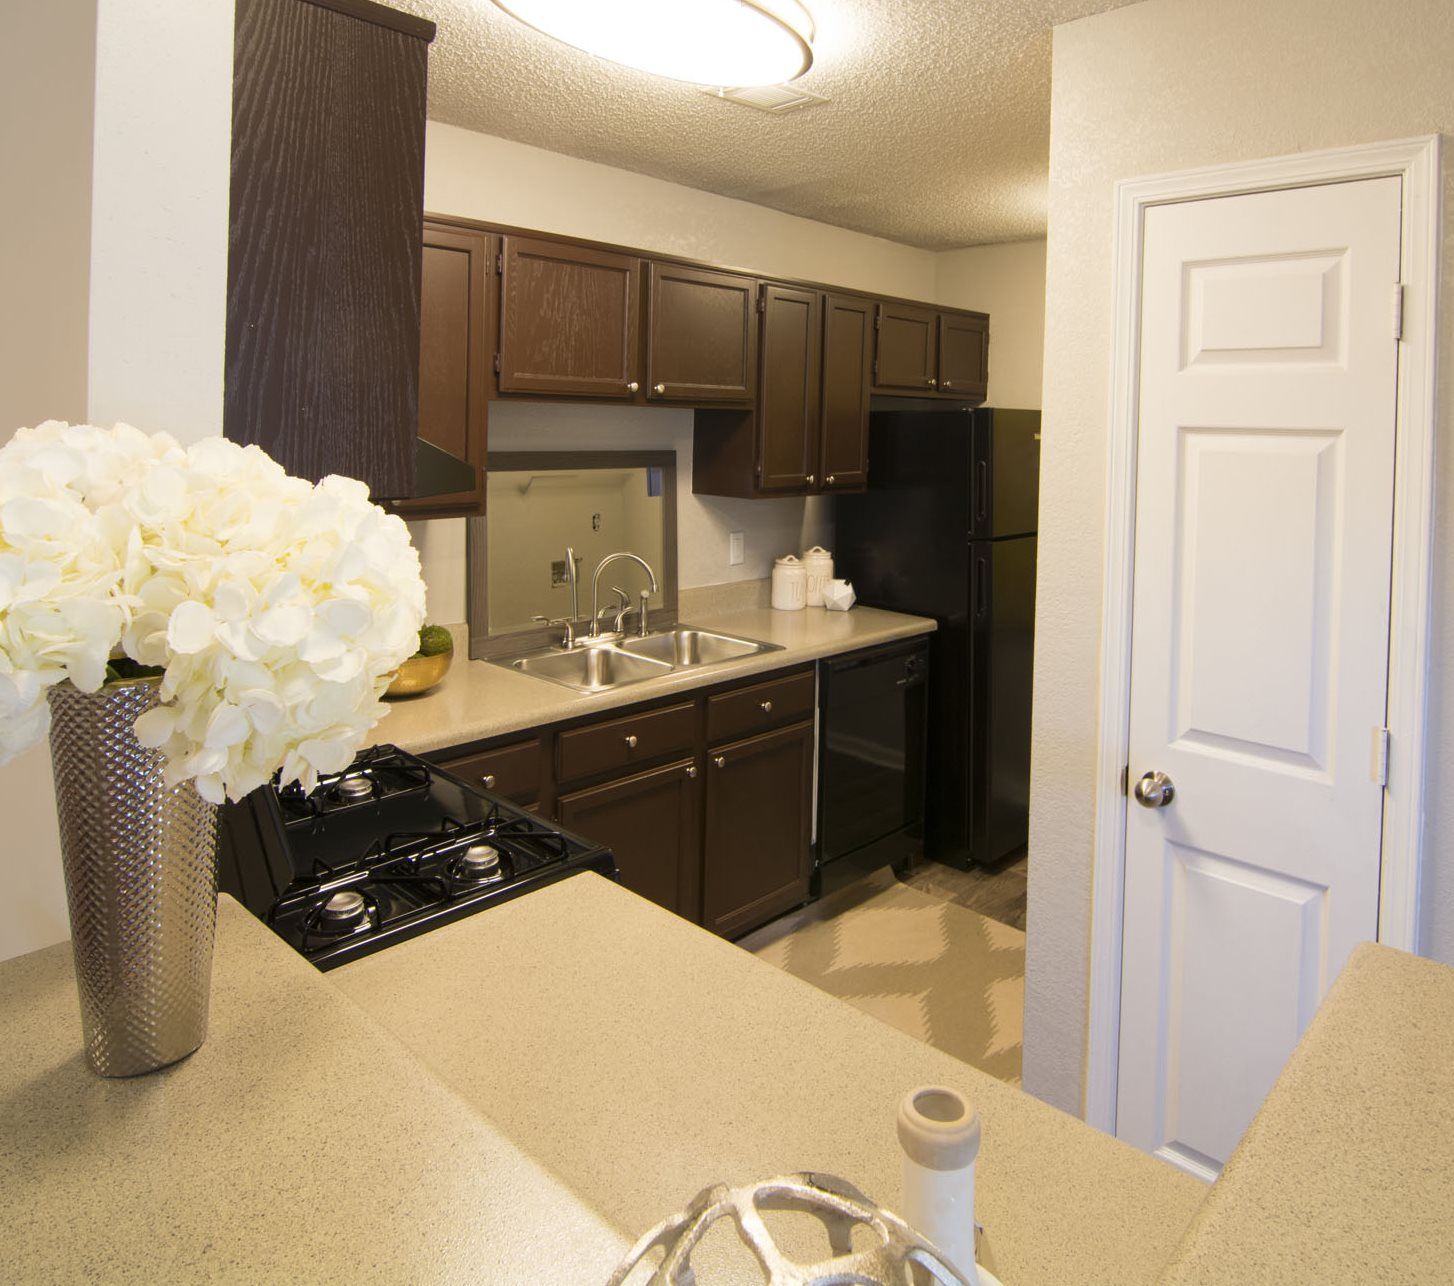 Averly Apartments | Apartments in Jonesboro, GA